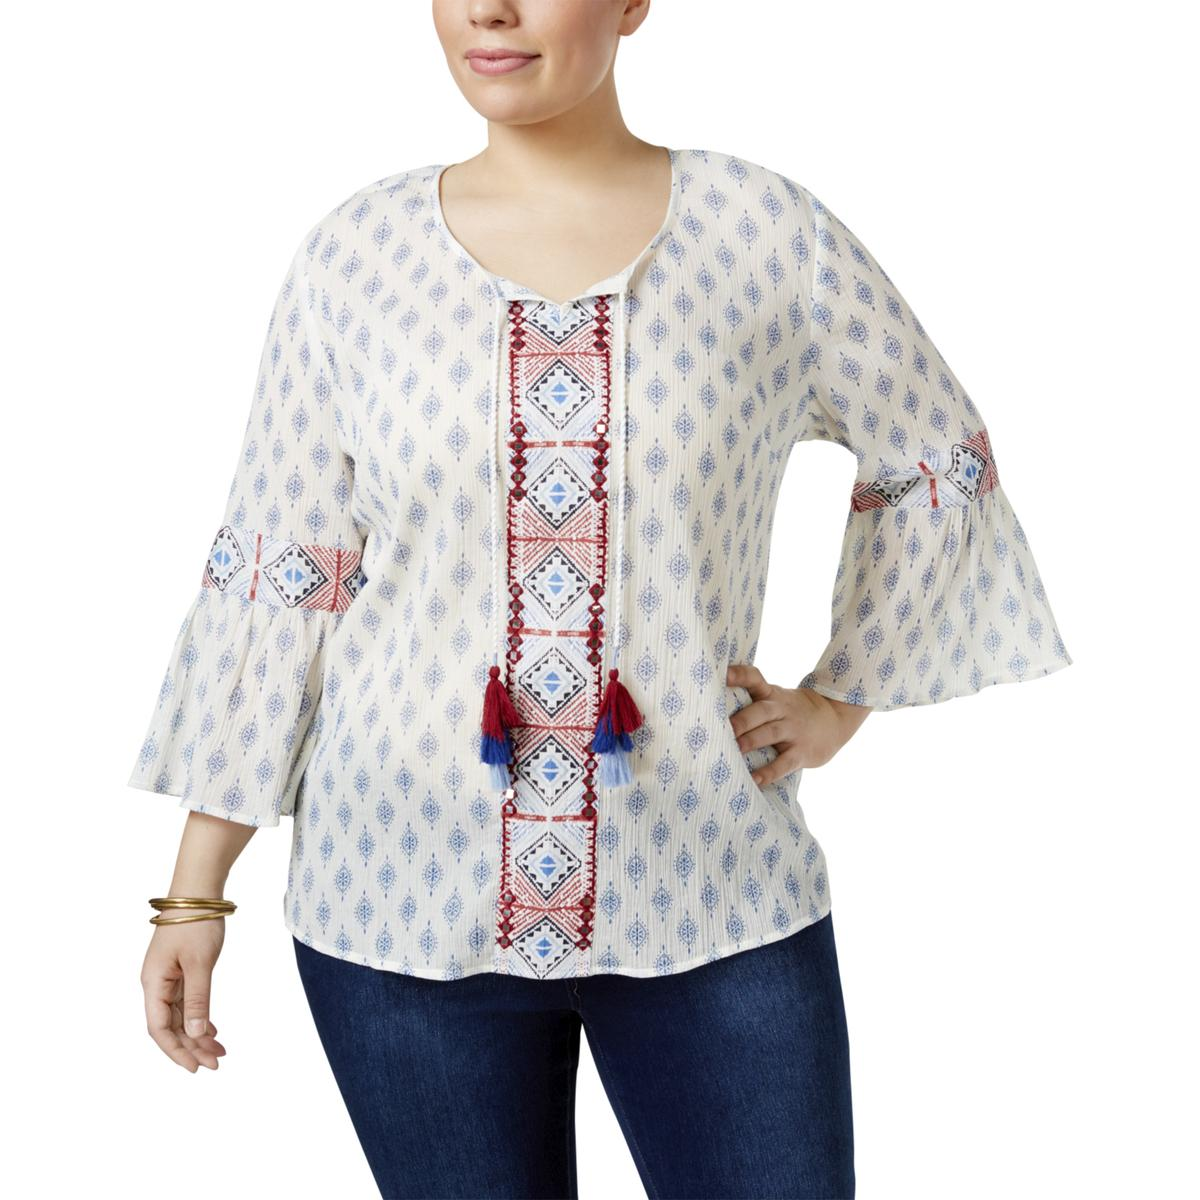 a1668b5da0cf4 Style Co Plus Size Top 1x Mixed Print Peasant Blouse White for sale ...